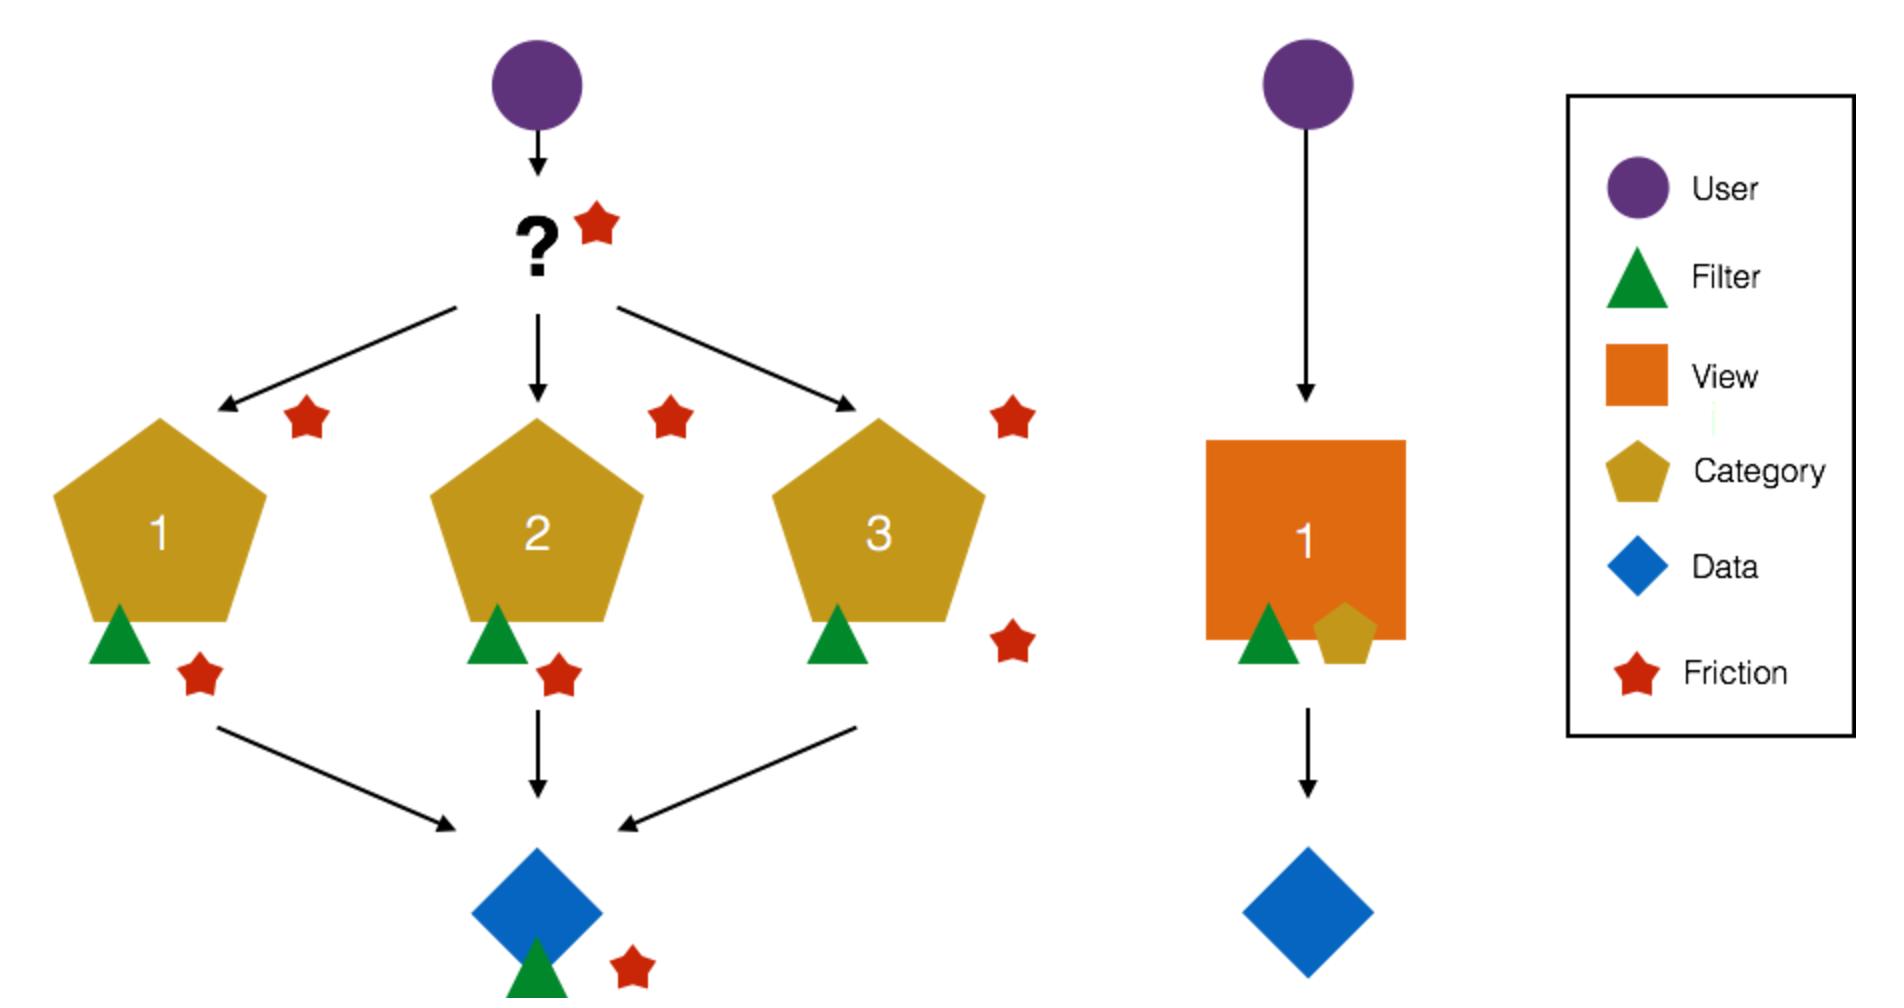 IA Tree Graph - Variations in event attributes were explored and distilled into a tree graph representing different approaches to information architecture